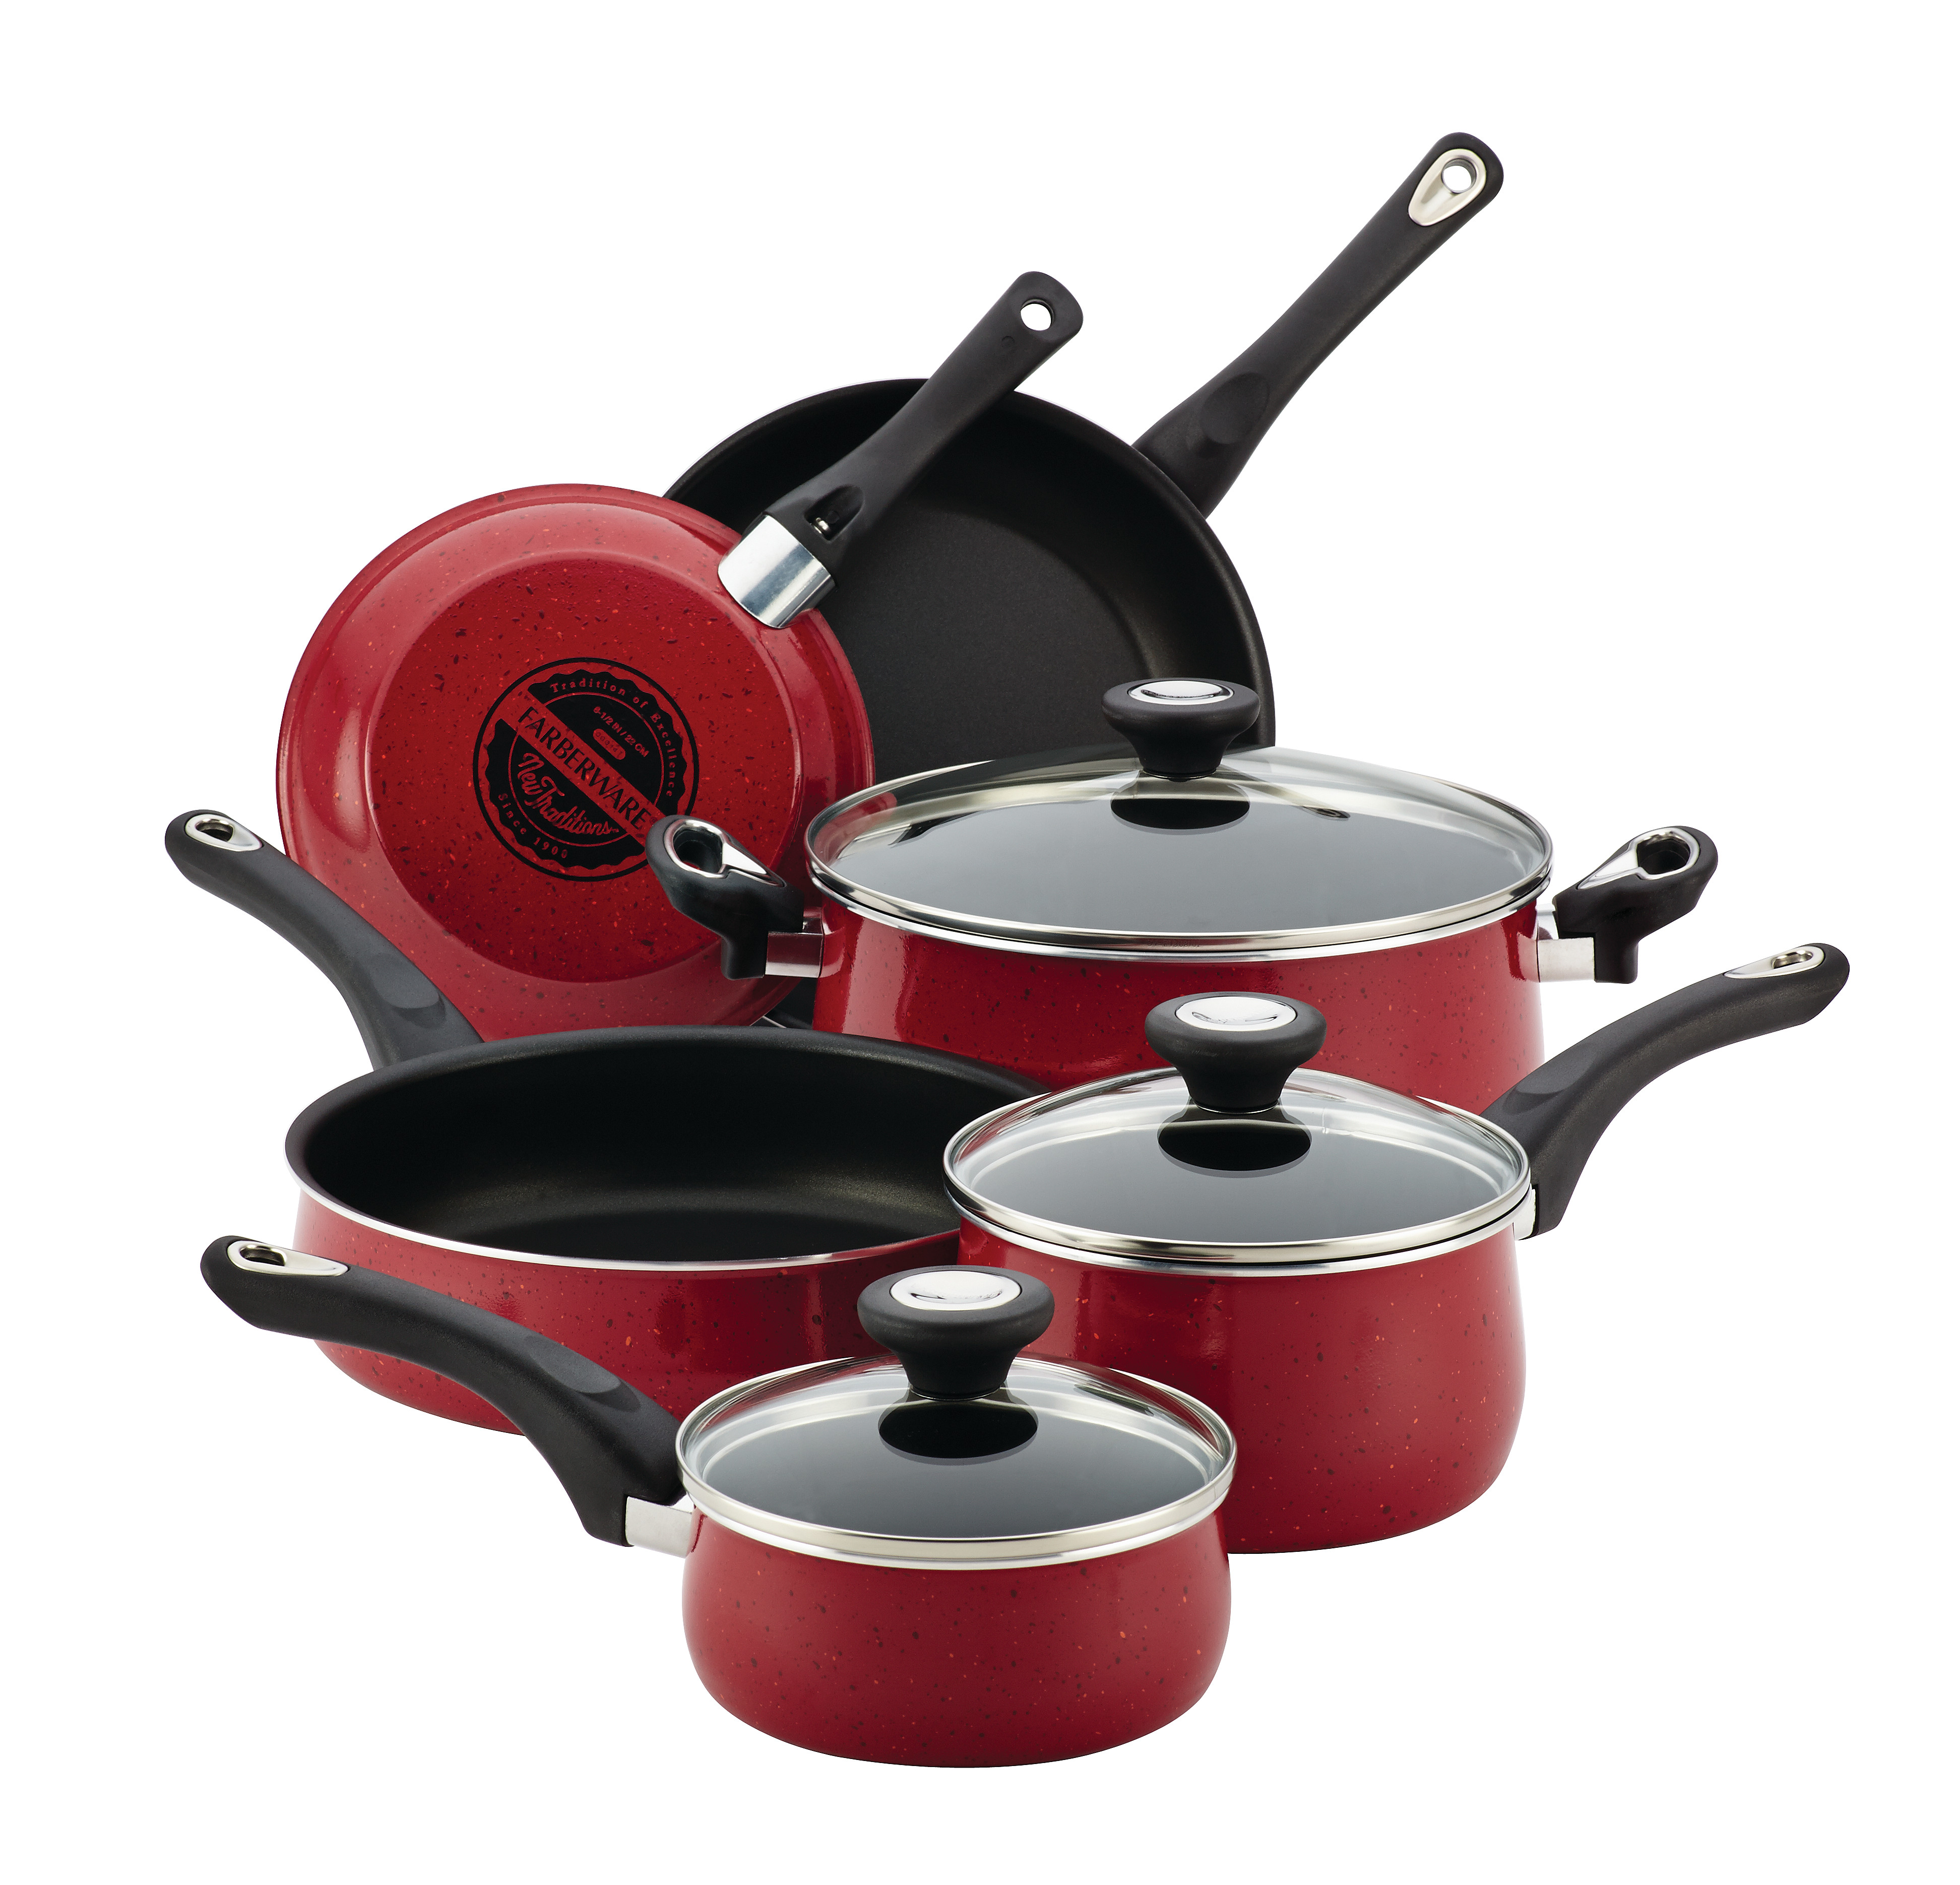 Farberware New Traditions Speckled Aluminum Nonstick 12-Piece Cookware Set, Red